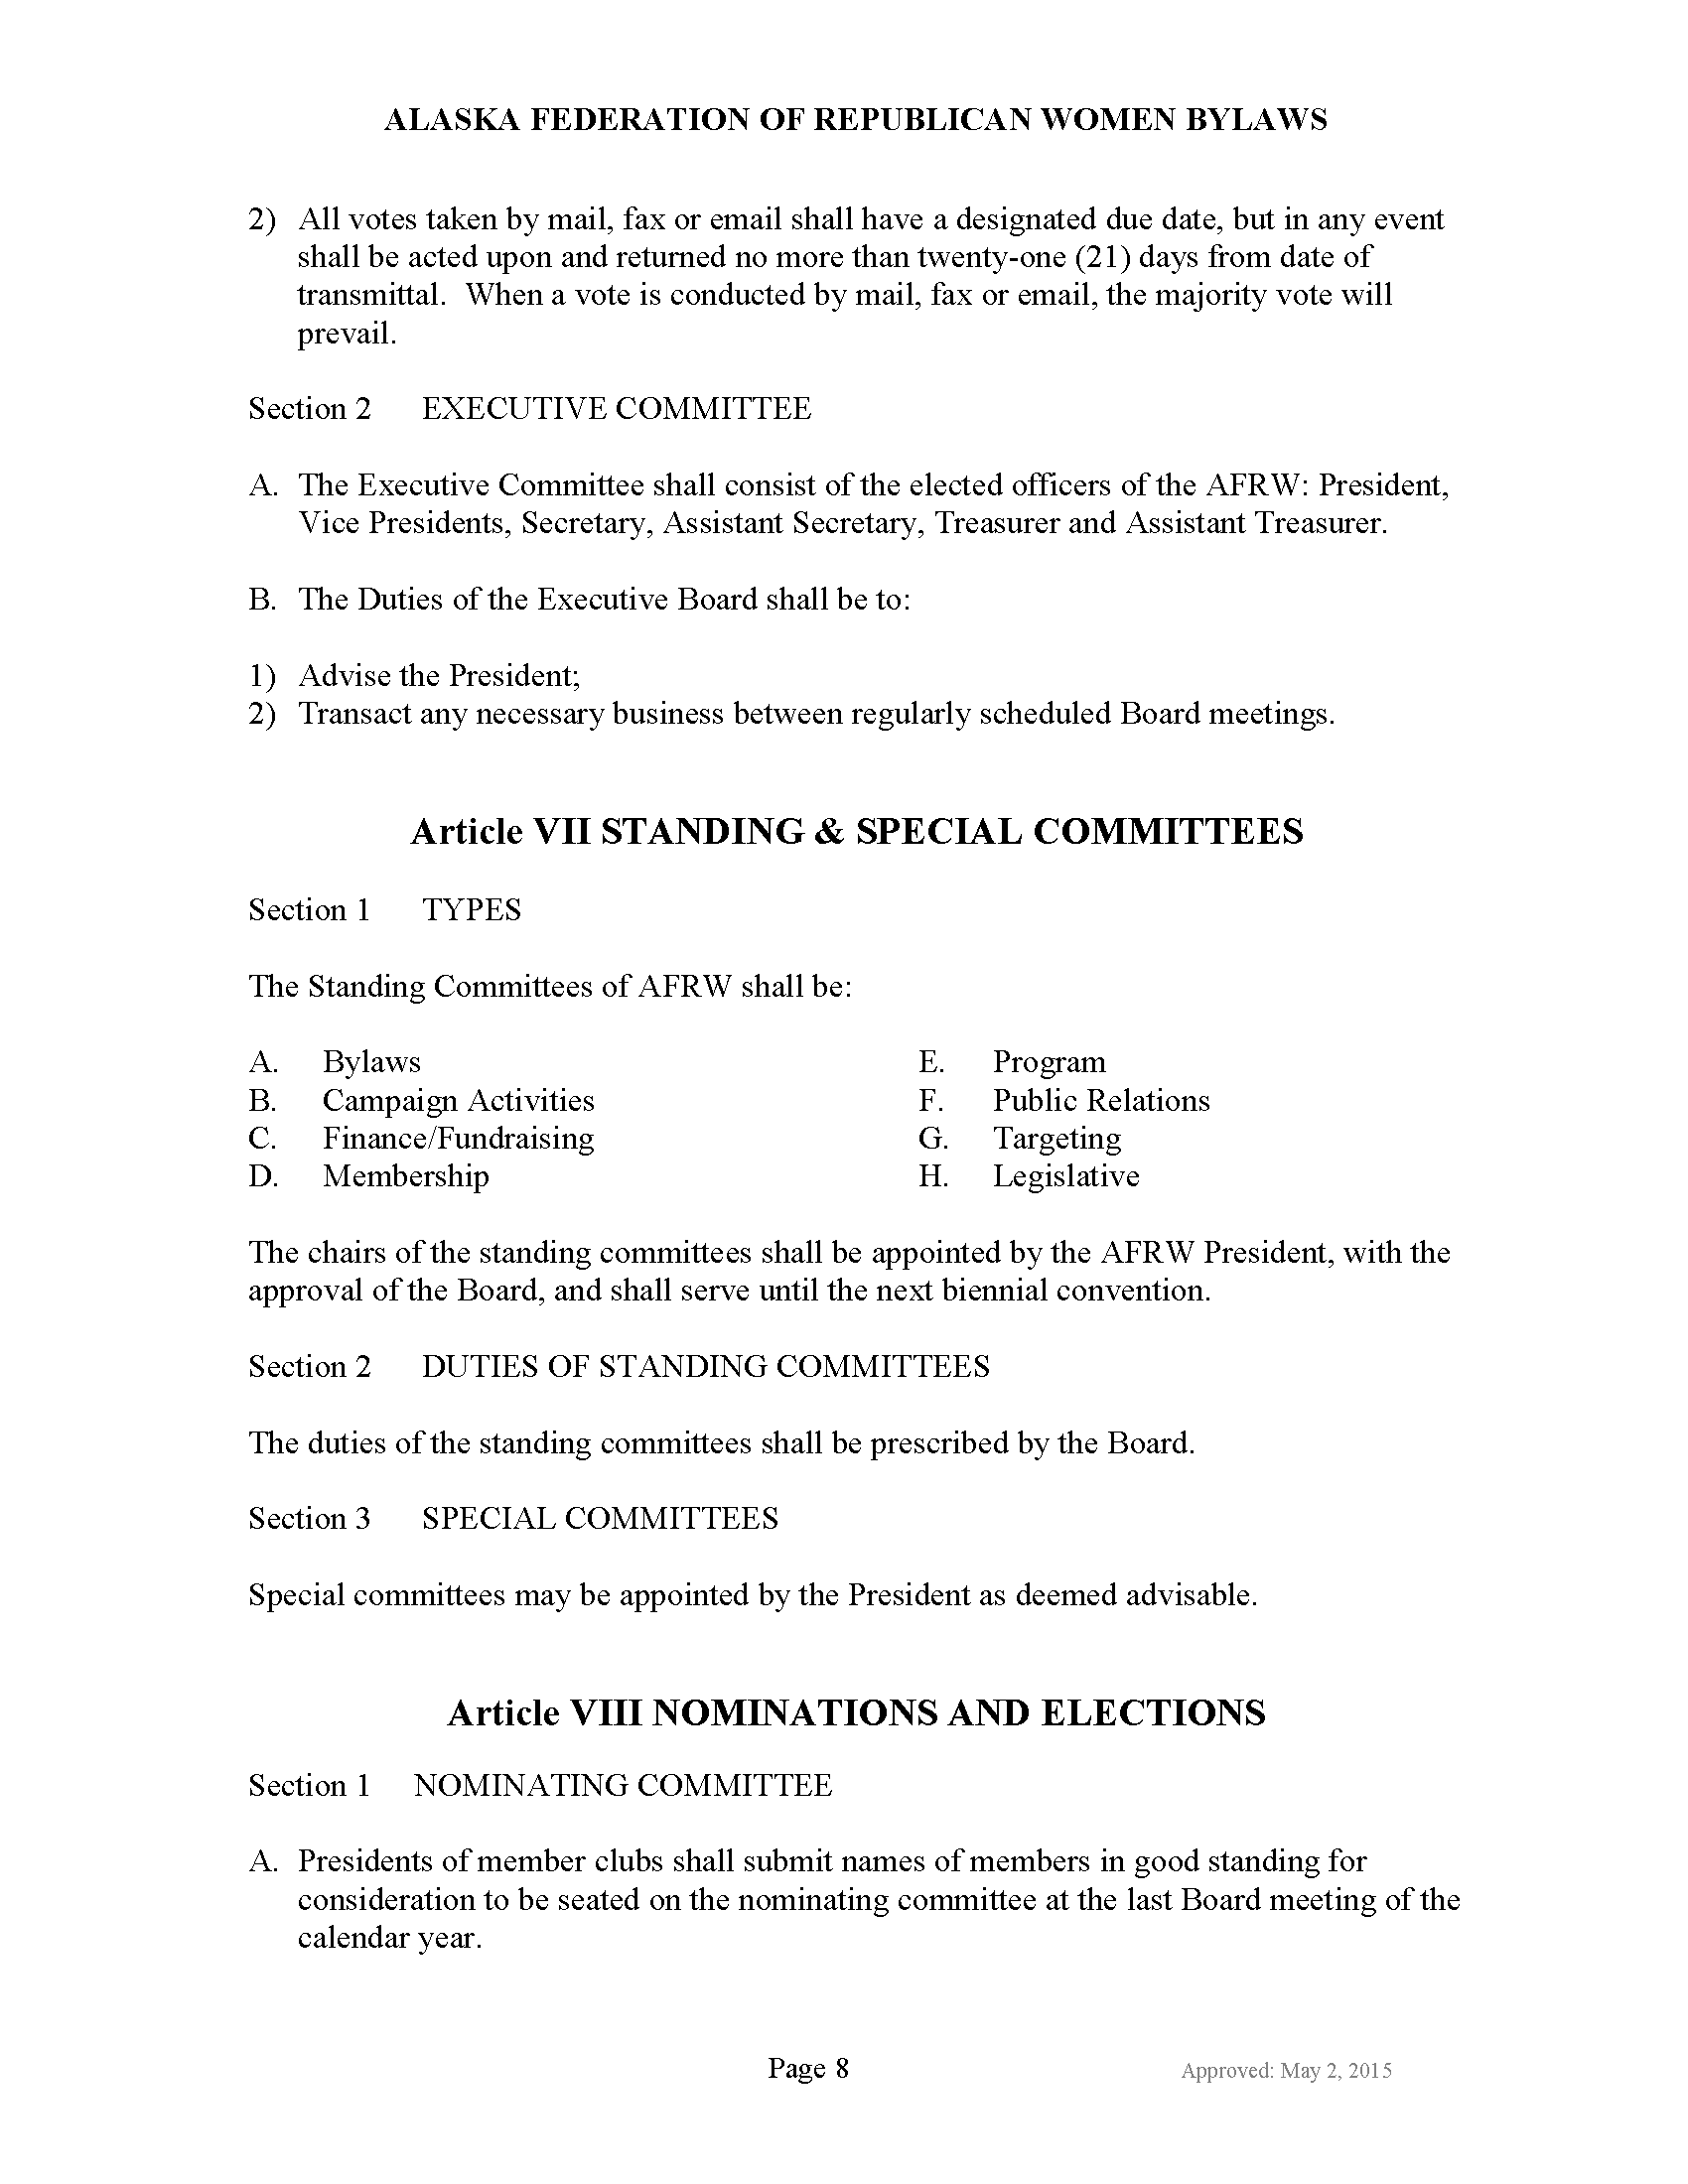 AFRW_Bylaws_ARWC_Approved_May_2__2015__(1)_Page_08.png